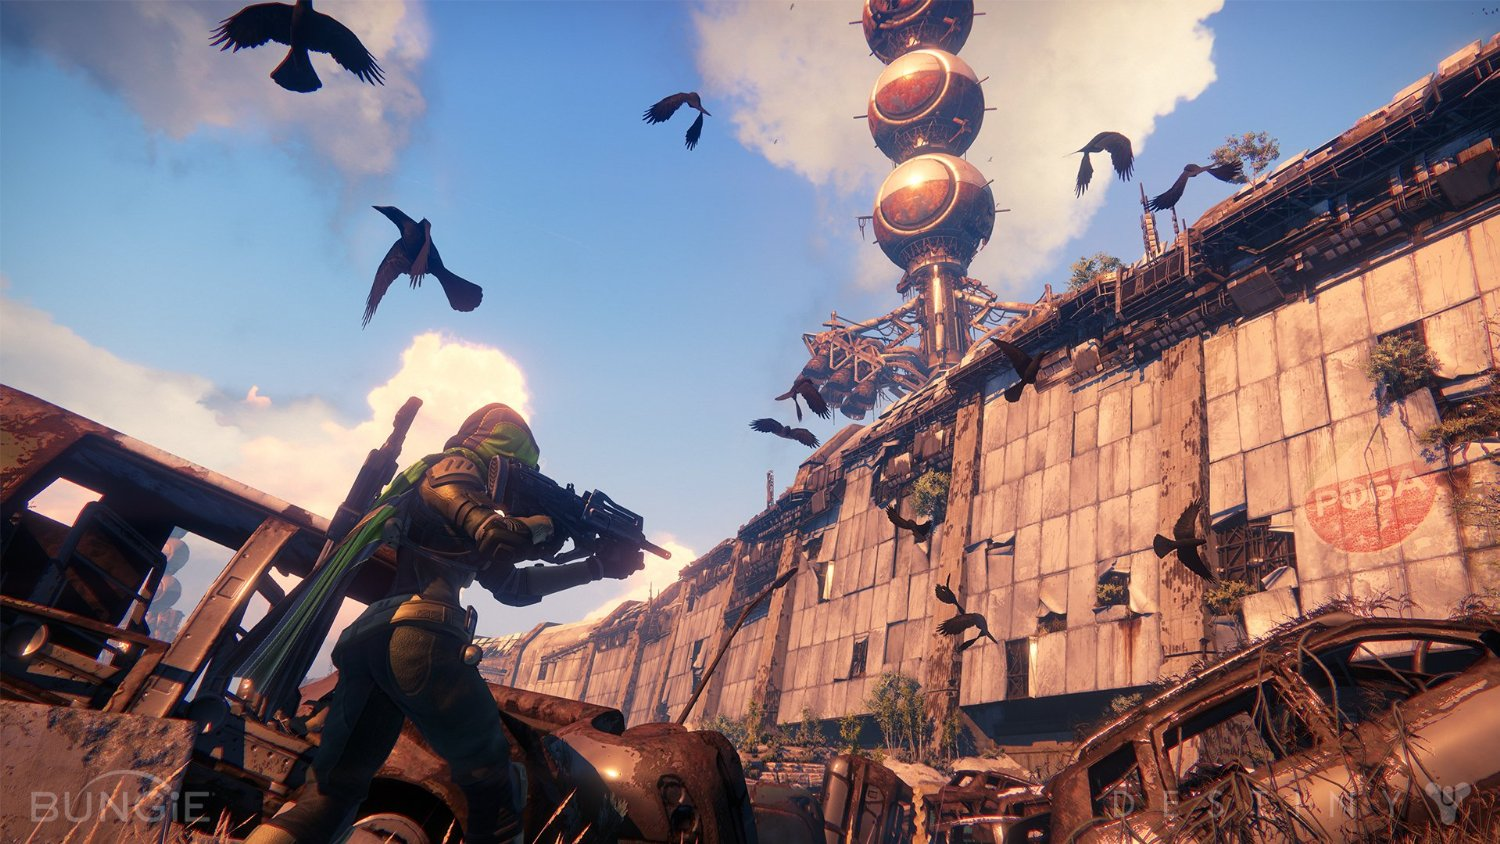 Bungie's Destiny for the Xbox One